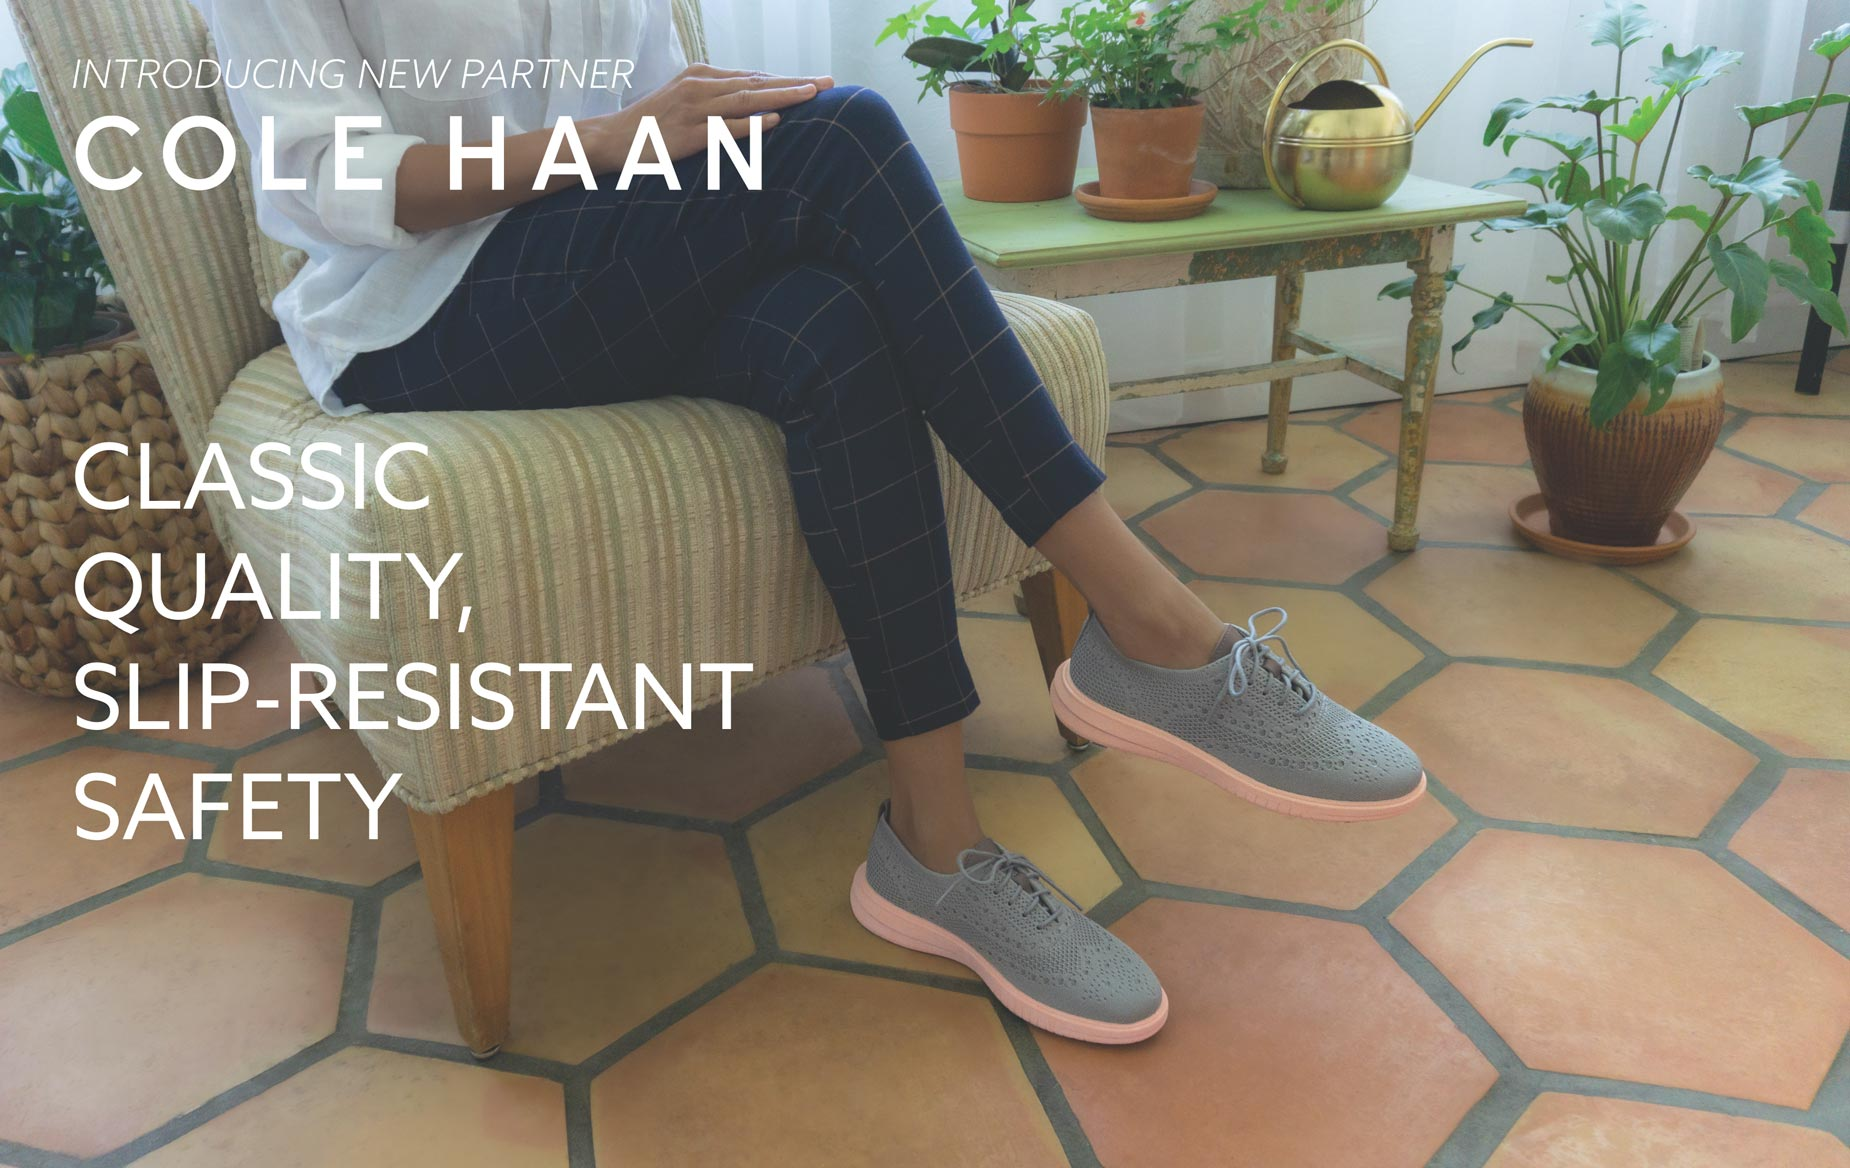 Cole Haan: Classic Quality, Slip-Resistant Safety